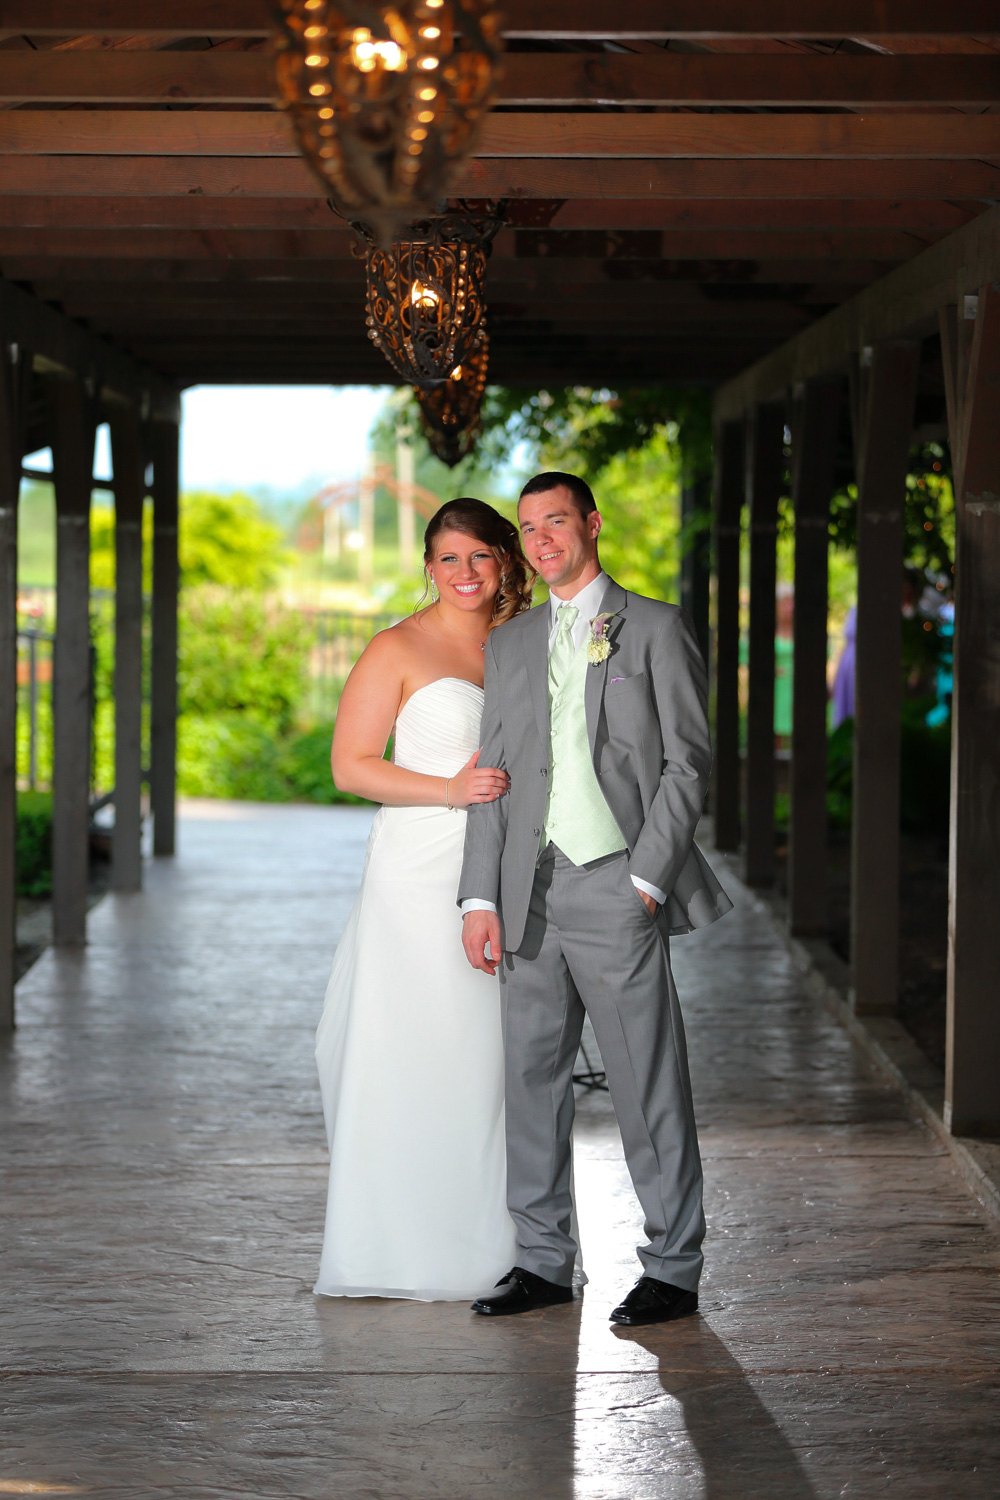 Wedding Photos Hidden Meadows Snohomish Washington26.jpg